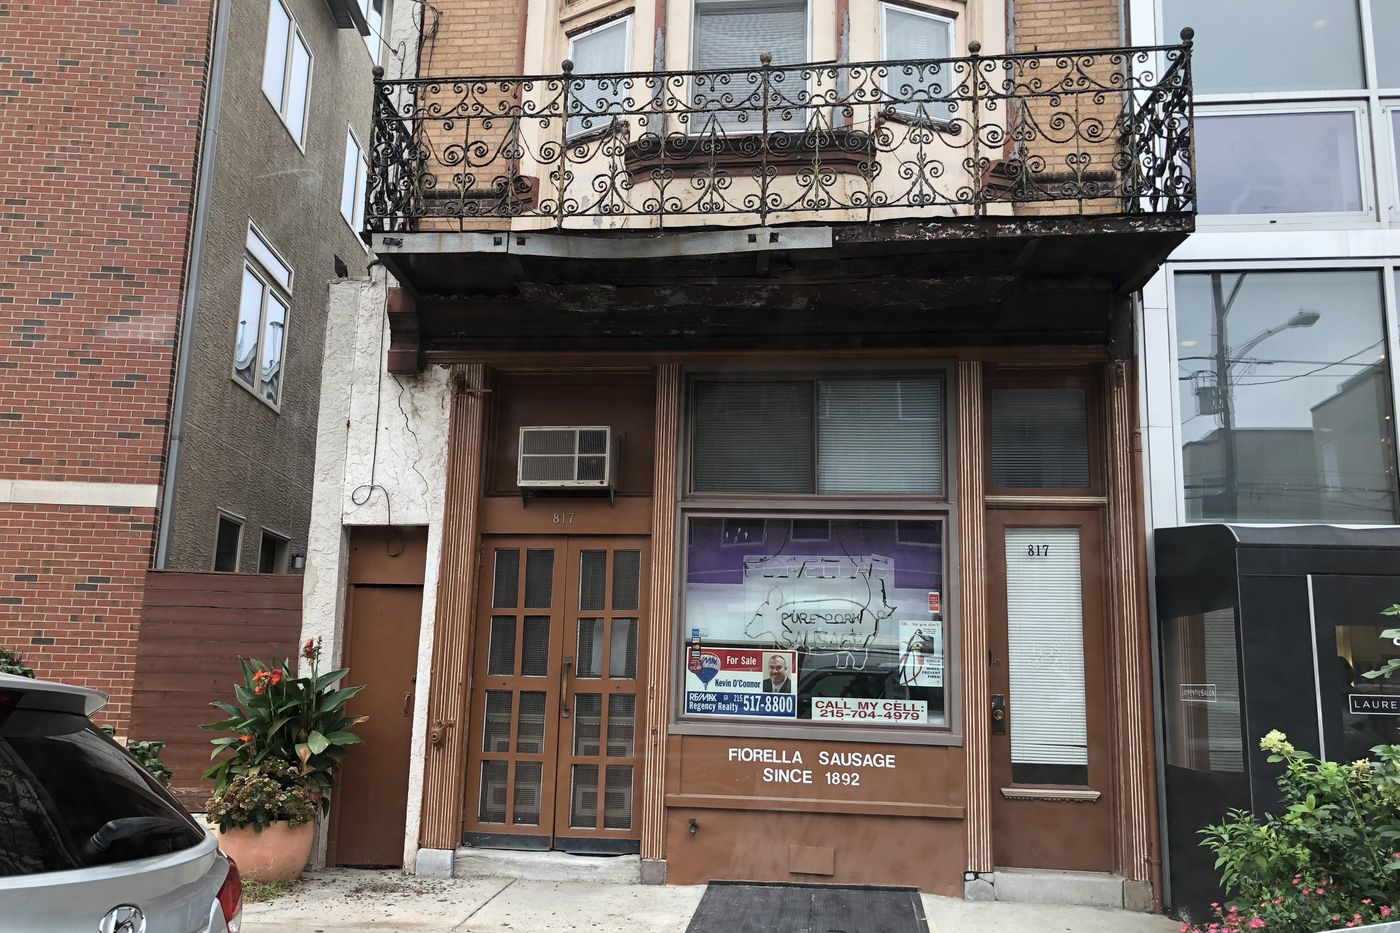 Vetri to buy shuttered South Philly butcher shop